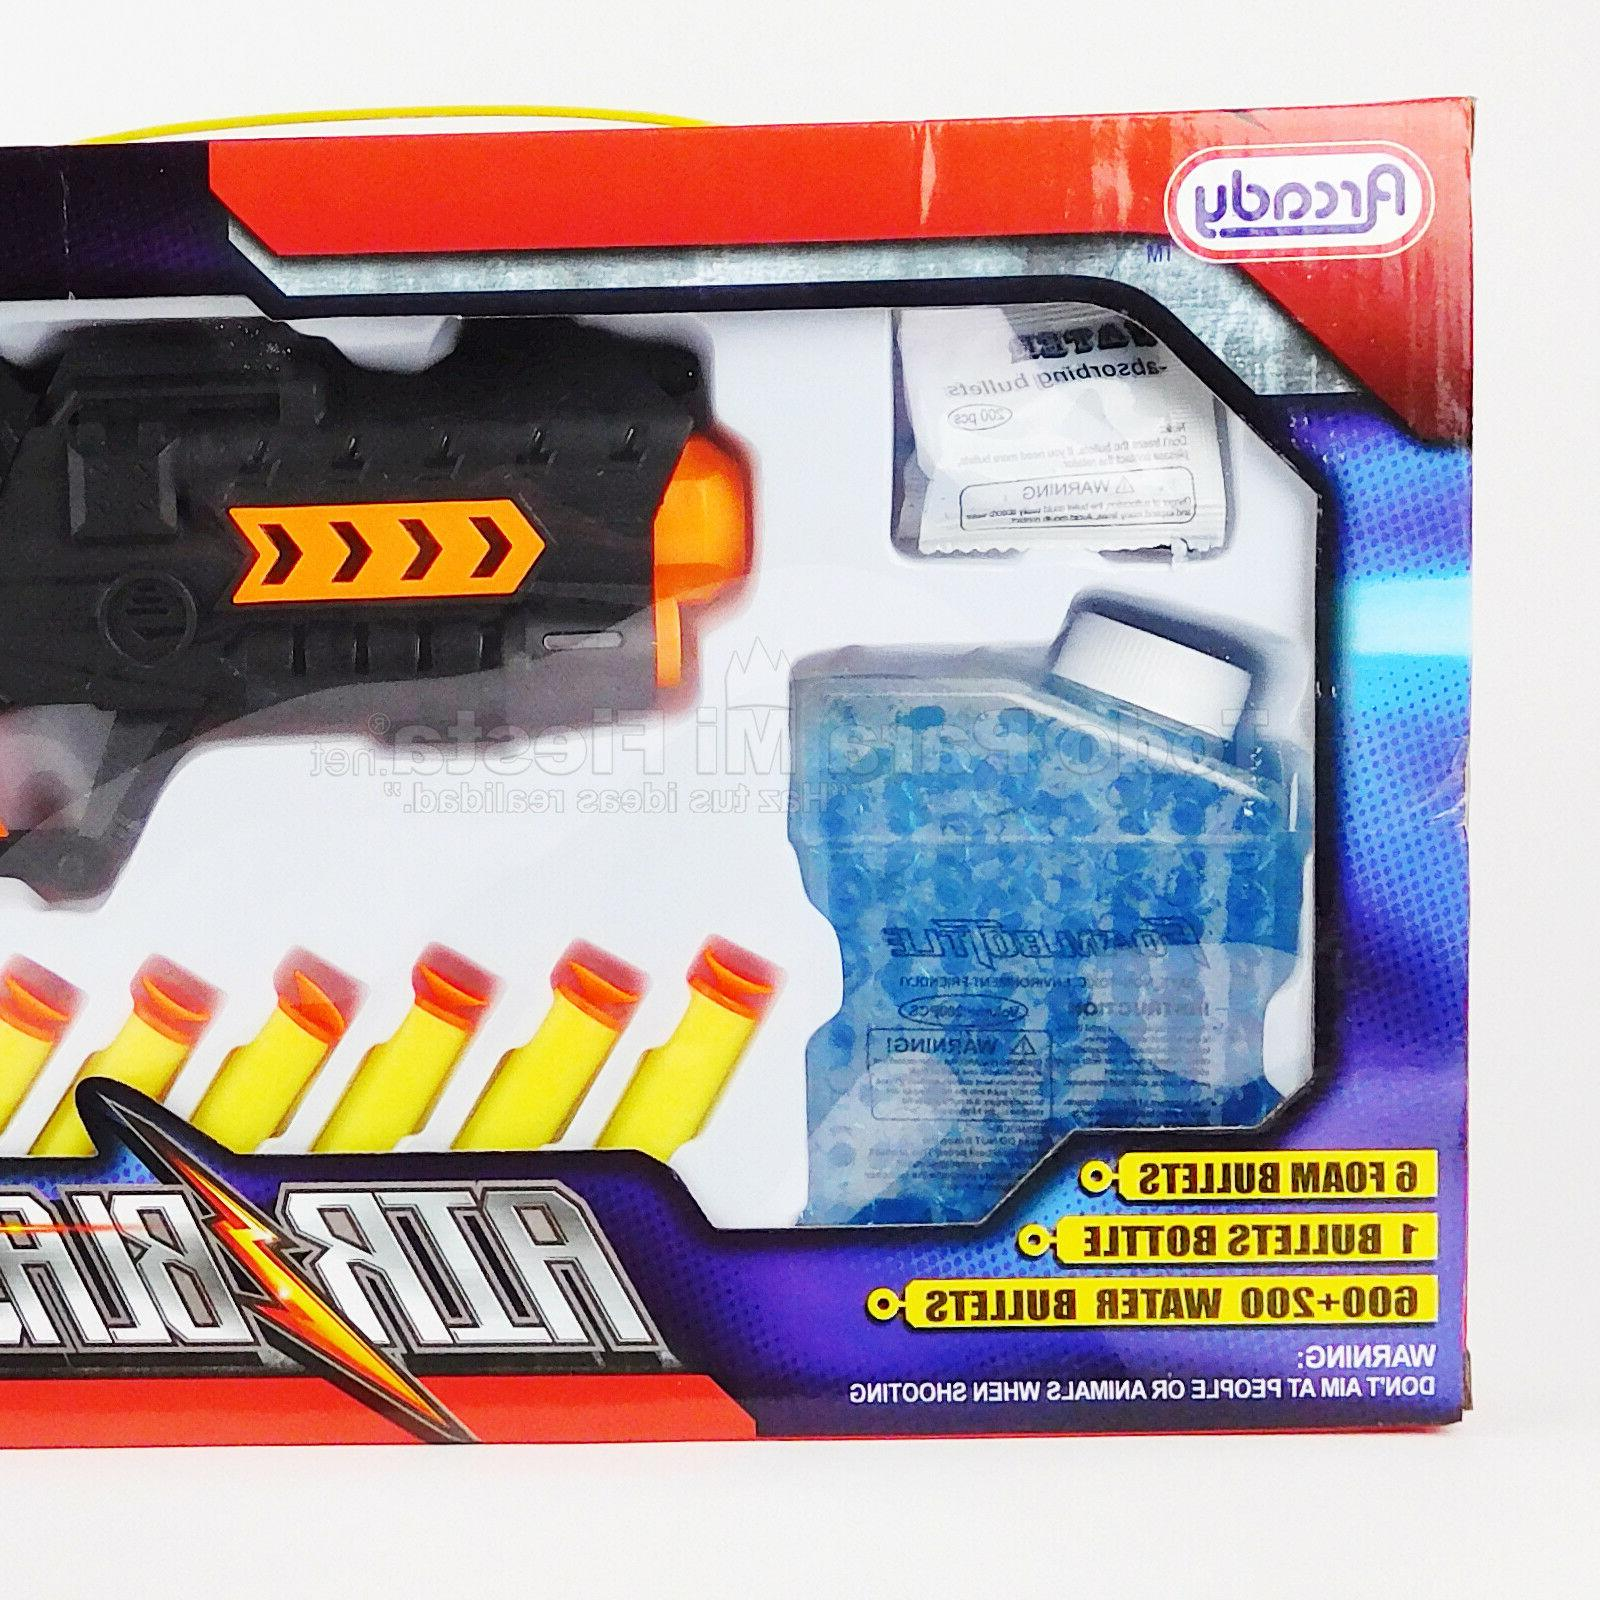 Nerf Toy Bullets Backyard Blaster Darts Kids Toy Set